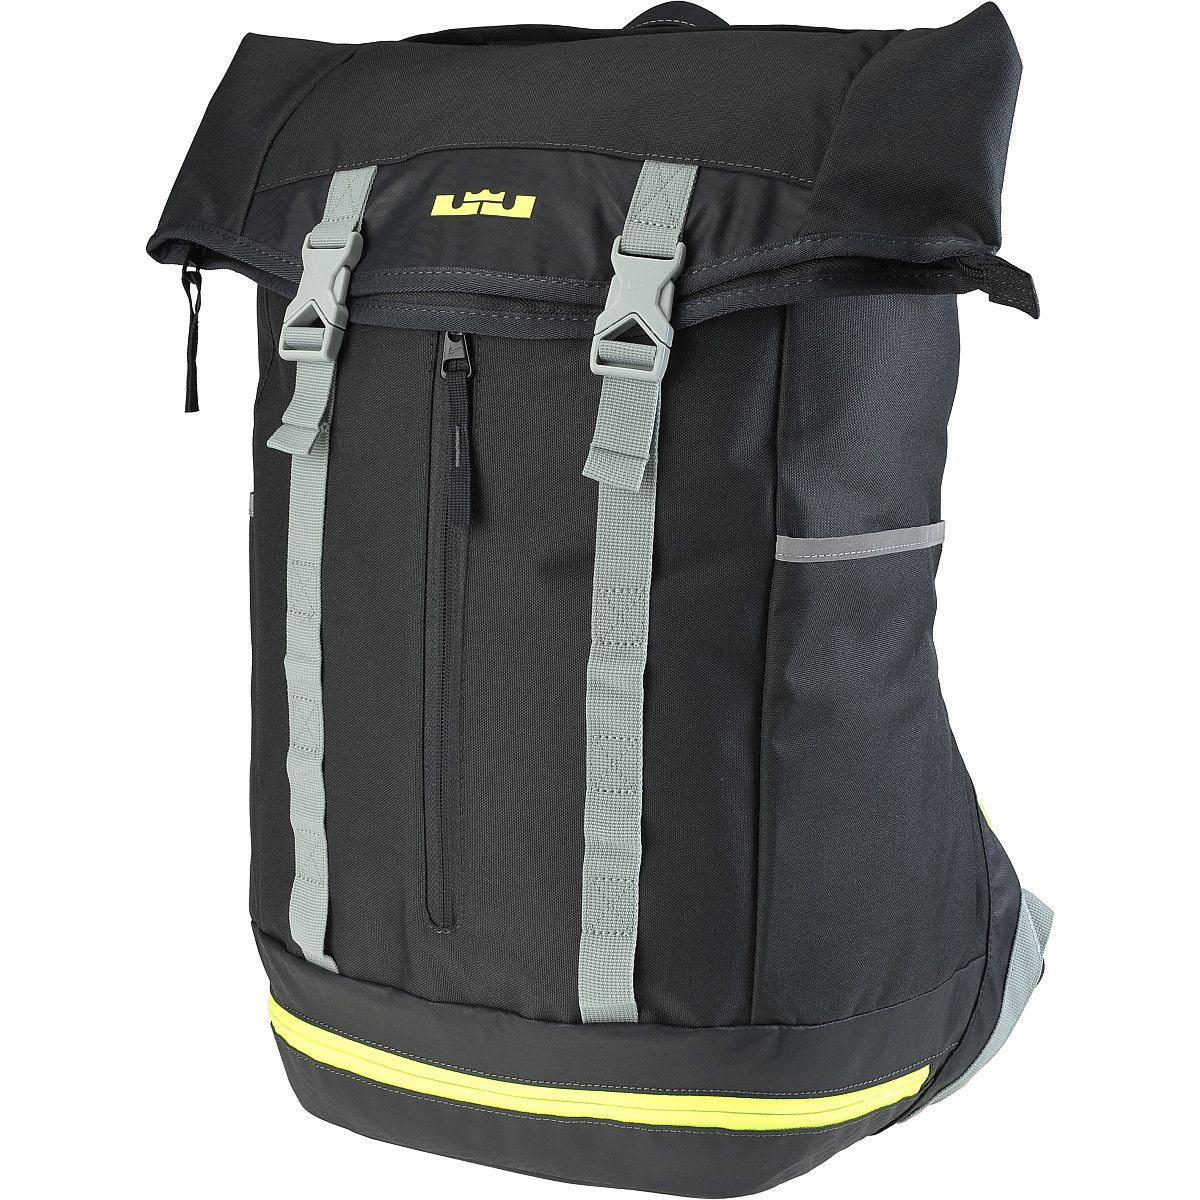 0f80a8a6bd6ba NIKE LeBron Ambassador Backpack - SportsAuthority.com | sports ...